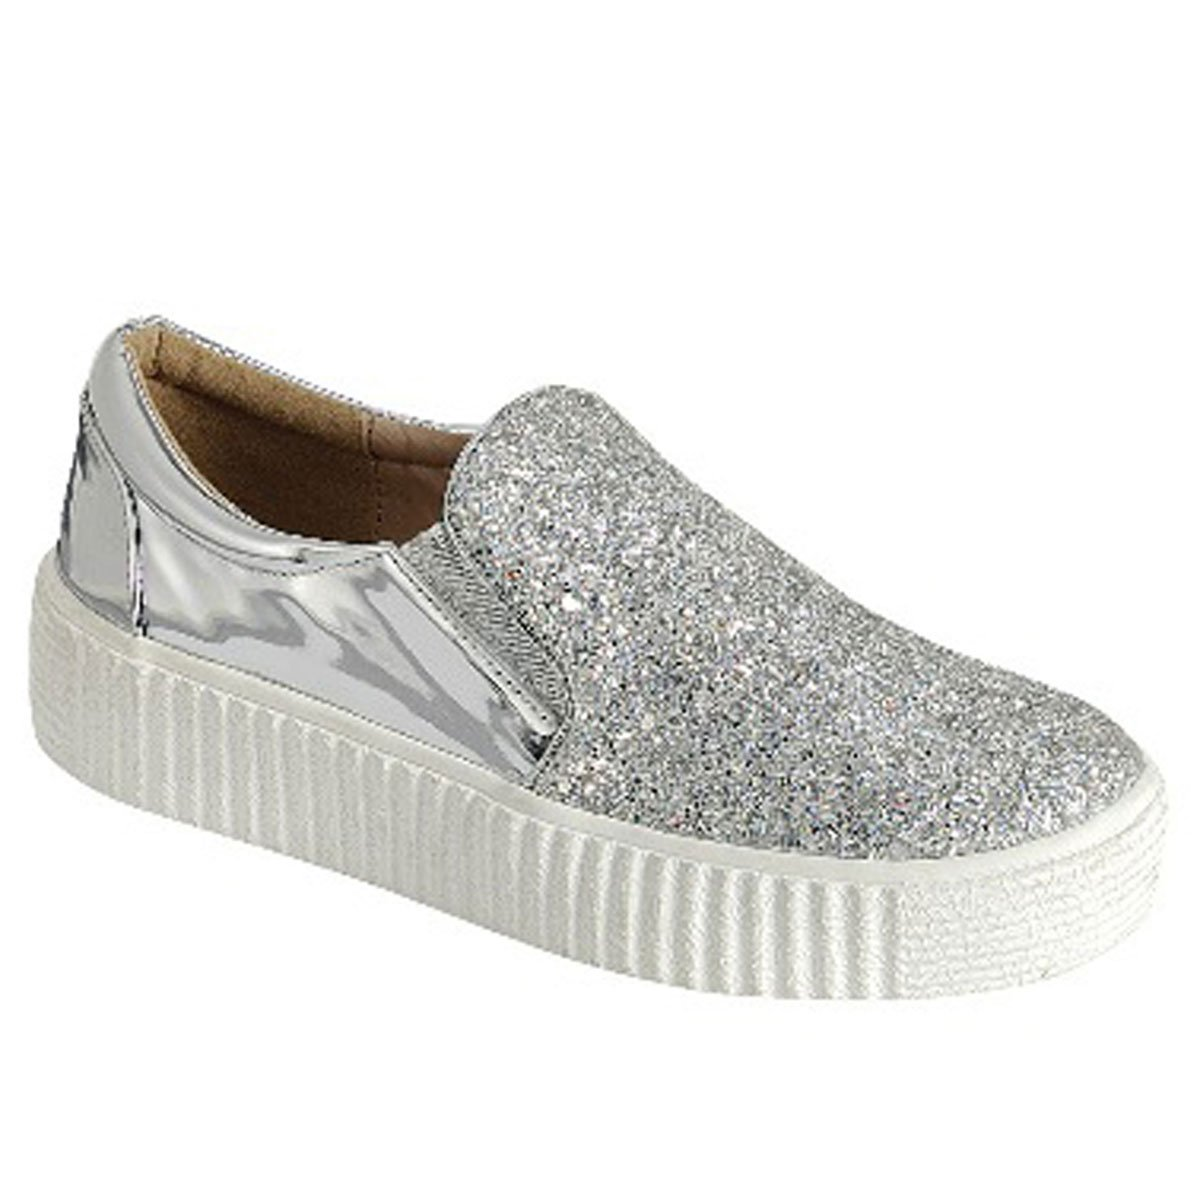 Best Clearance Sale Metallic Silver Bootie Sneaker Crepe Rubber Sole Round Toe Anti Skid New Modern Cheerleading Casual Flashy Bling Summer Sketcher Shoe Gift Idea for Women Teen Girl (Size 8, Silver)